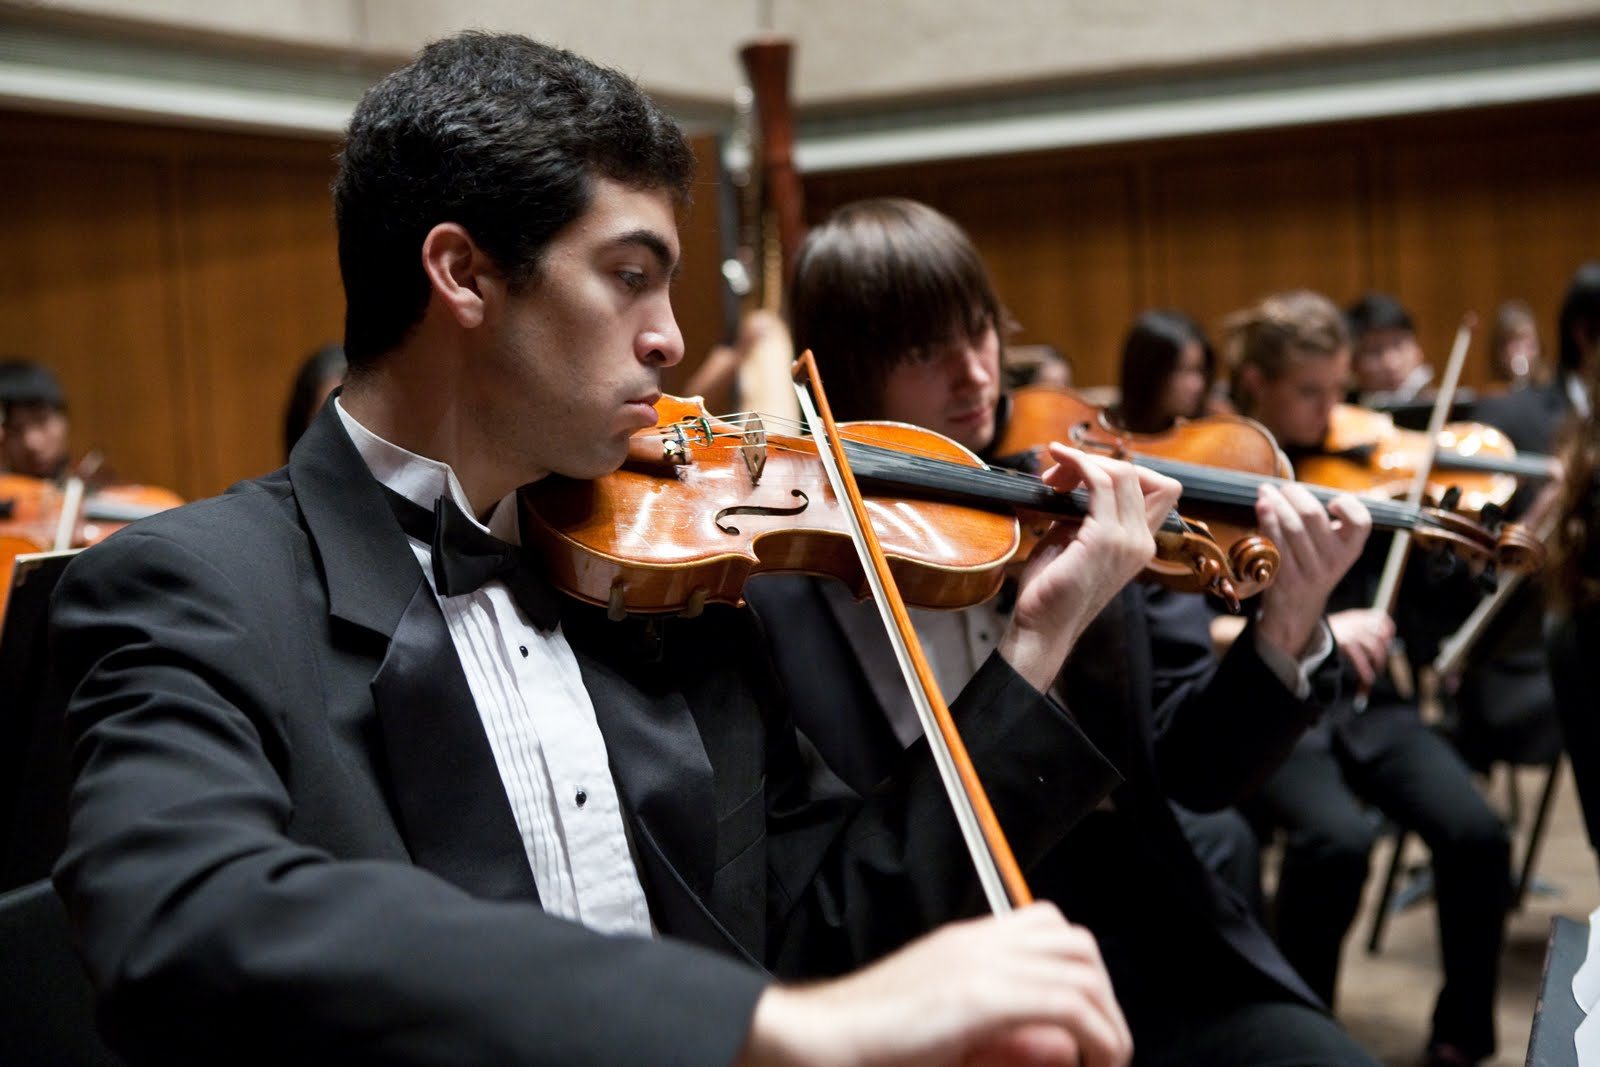 The American Prize TEXAS CHAMBER GROUP ORCHESTRA wins THE AMERICAN PRIZE